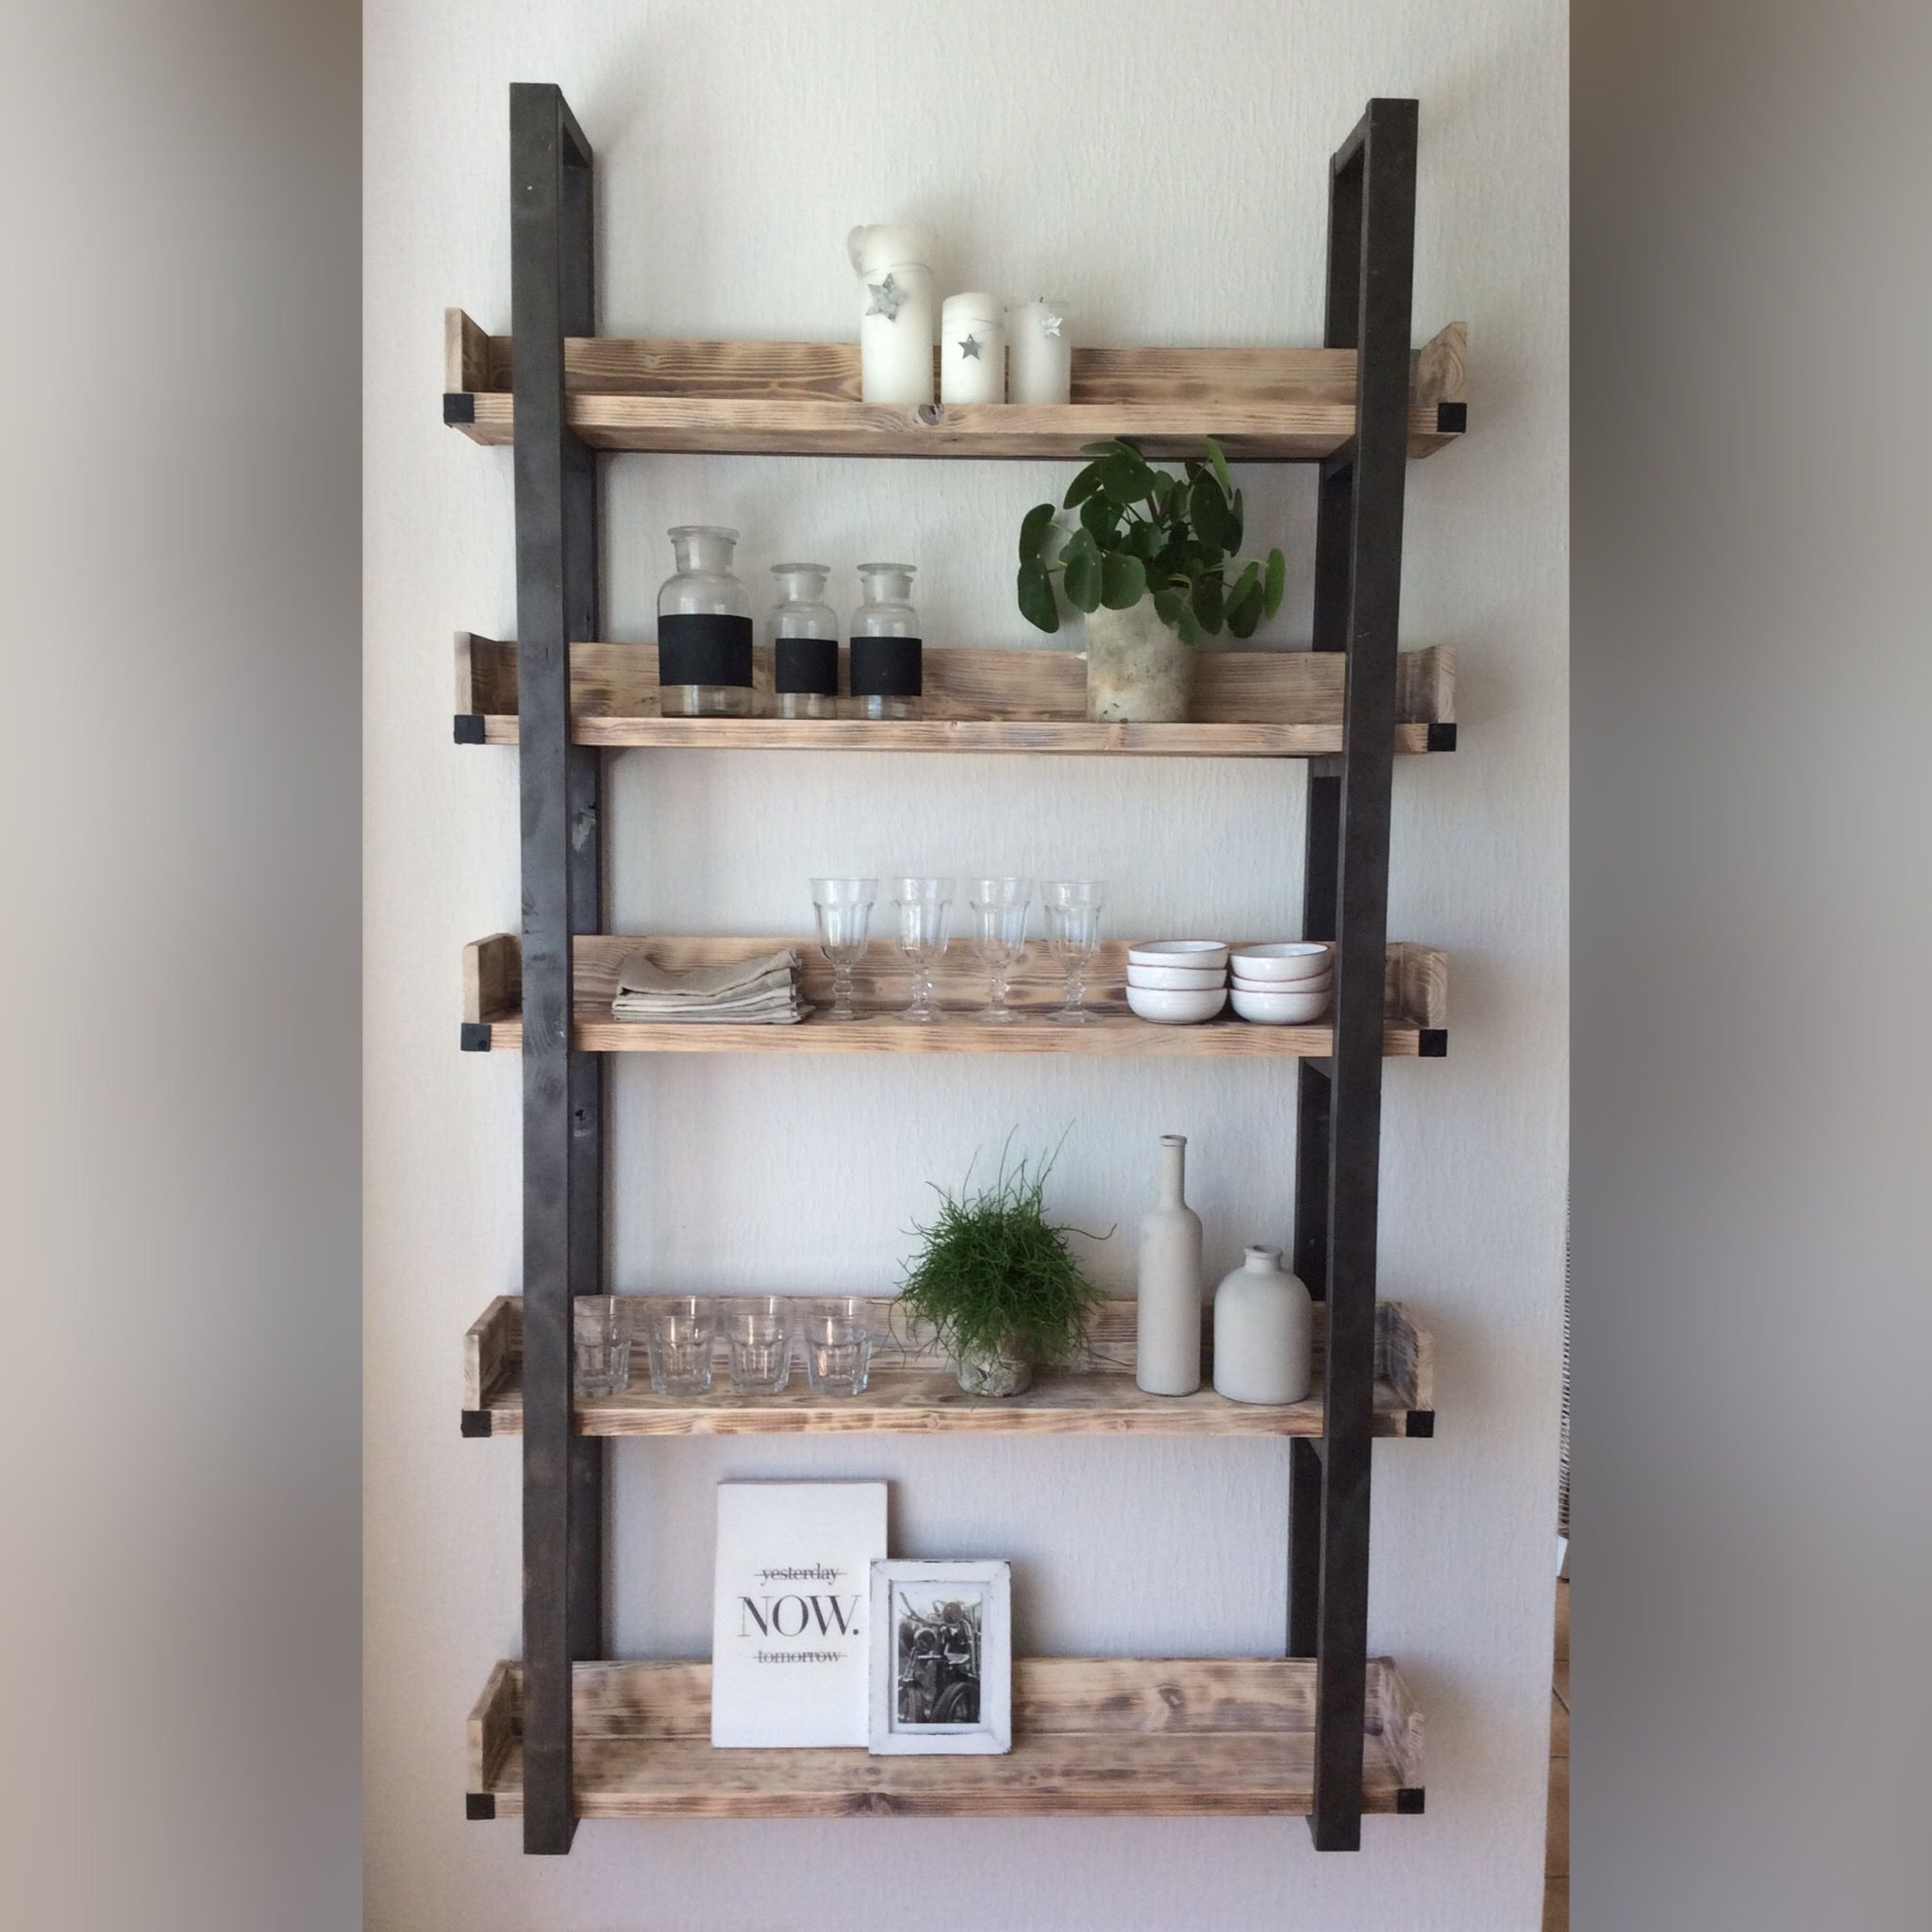 DIY Floating Plate Rack / Holz / Upcycling/Holz altern lassen